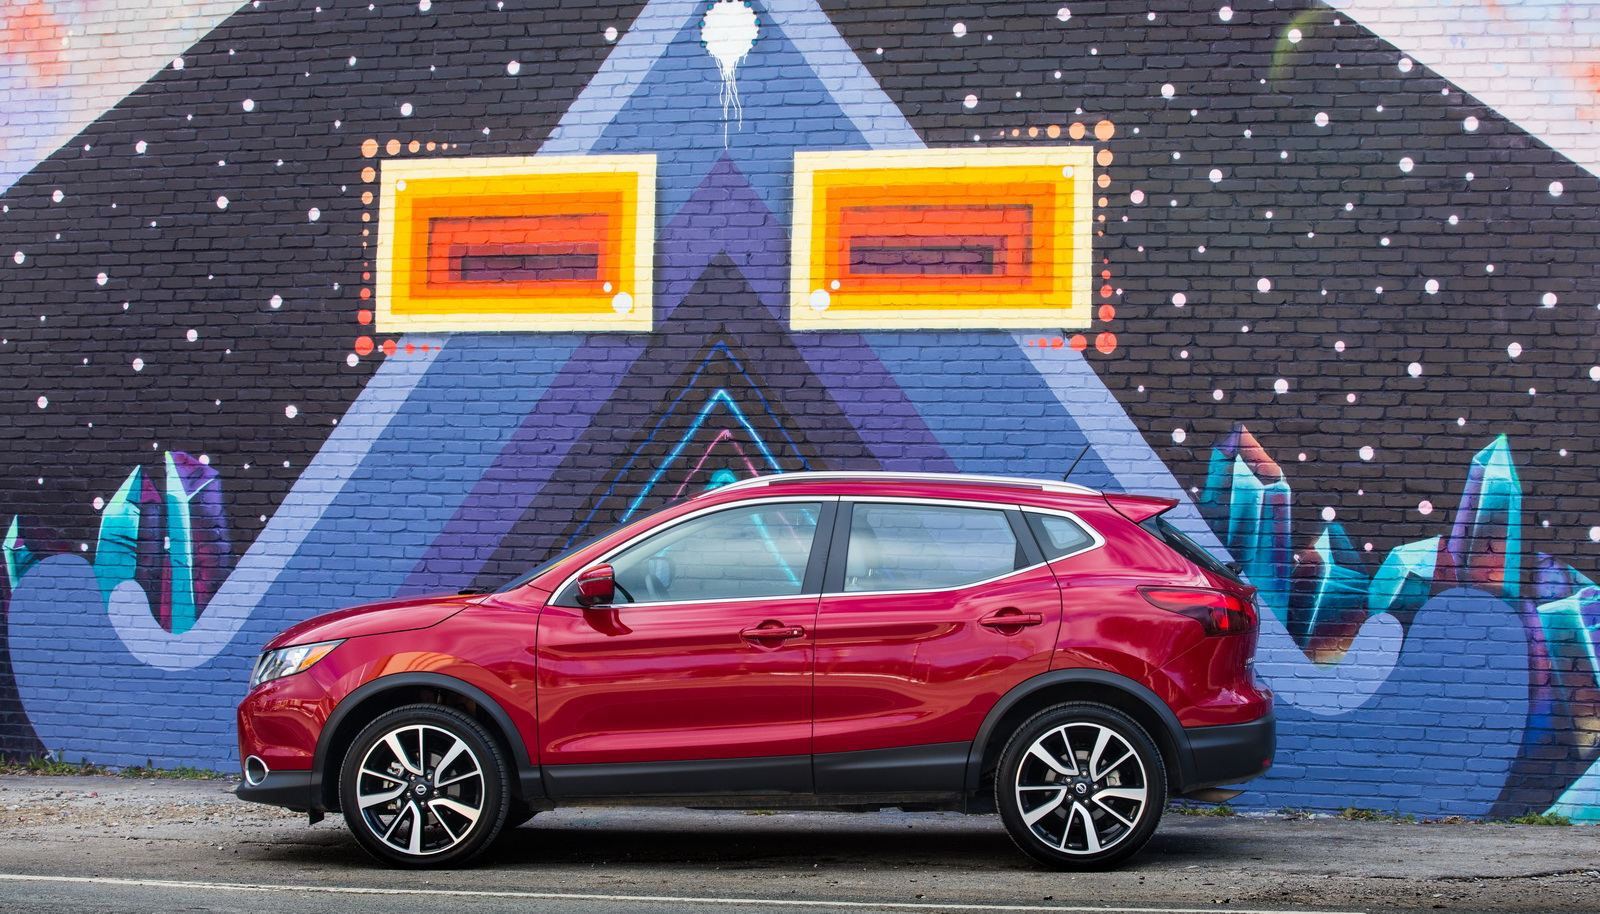 Nissan Rogue Remote Start >> 2018 Nissan Rogue Sport Goes On Sale Virtually Unchanged From $22,615 | Carscoops